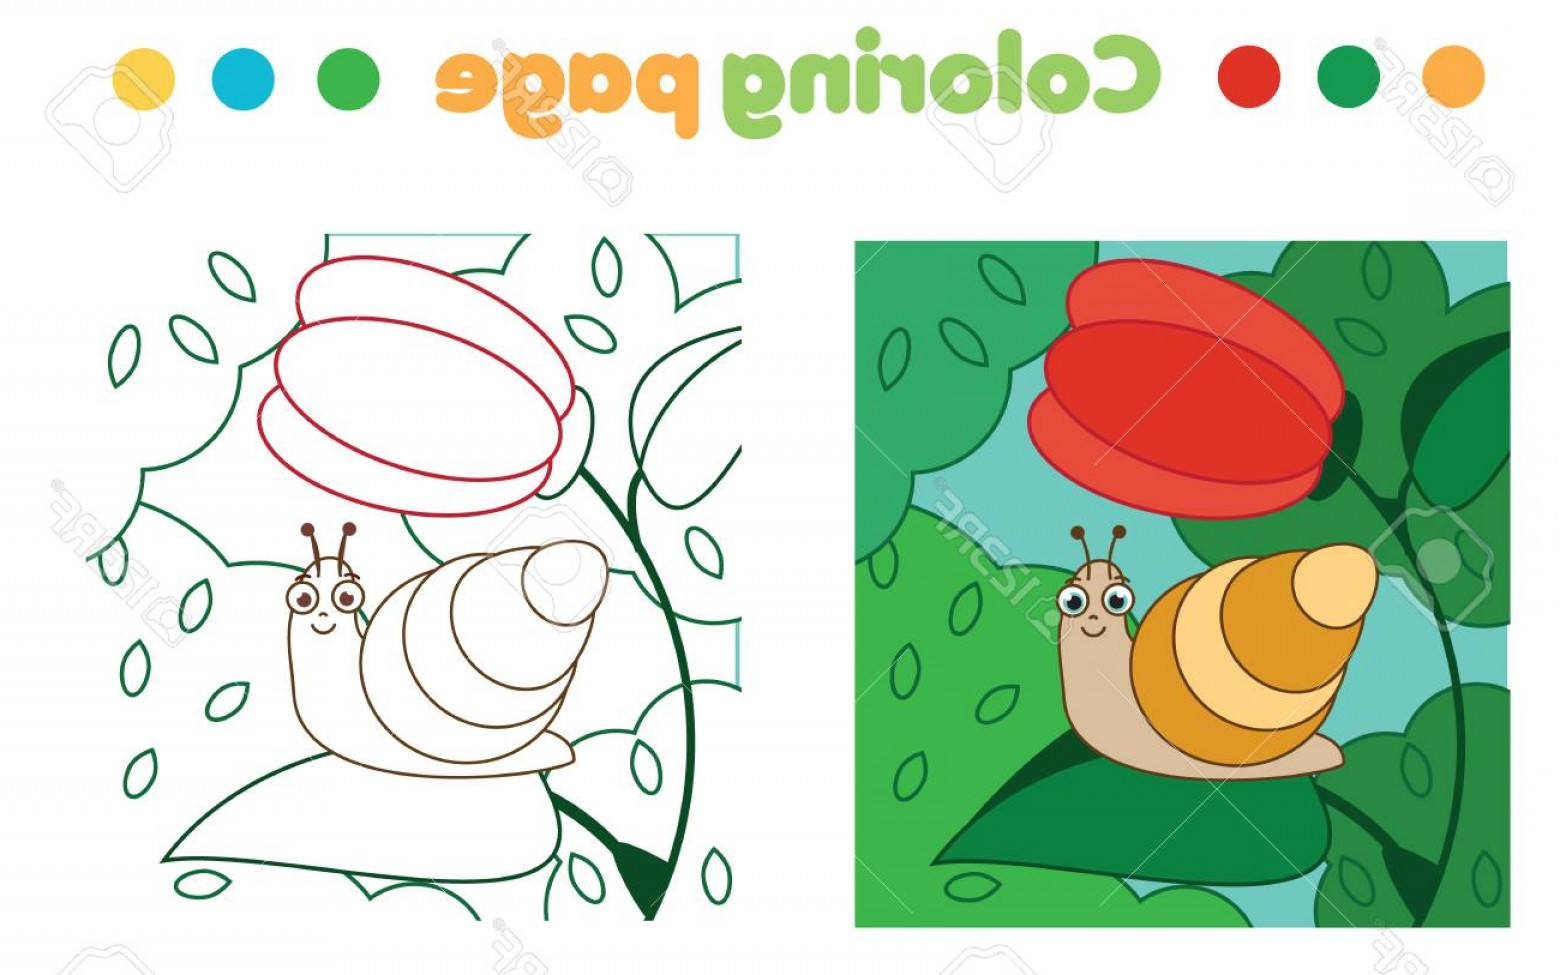 Vector Coloring Sheet: Photostock Vector Coloring Page With Snail On Flower Color The Picture Educational Children Game Drawing Kids Activity